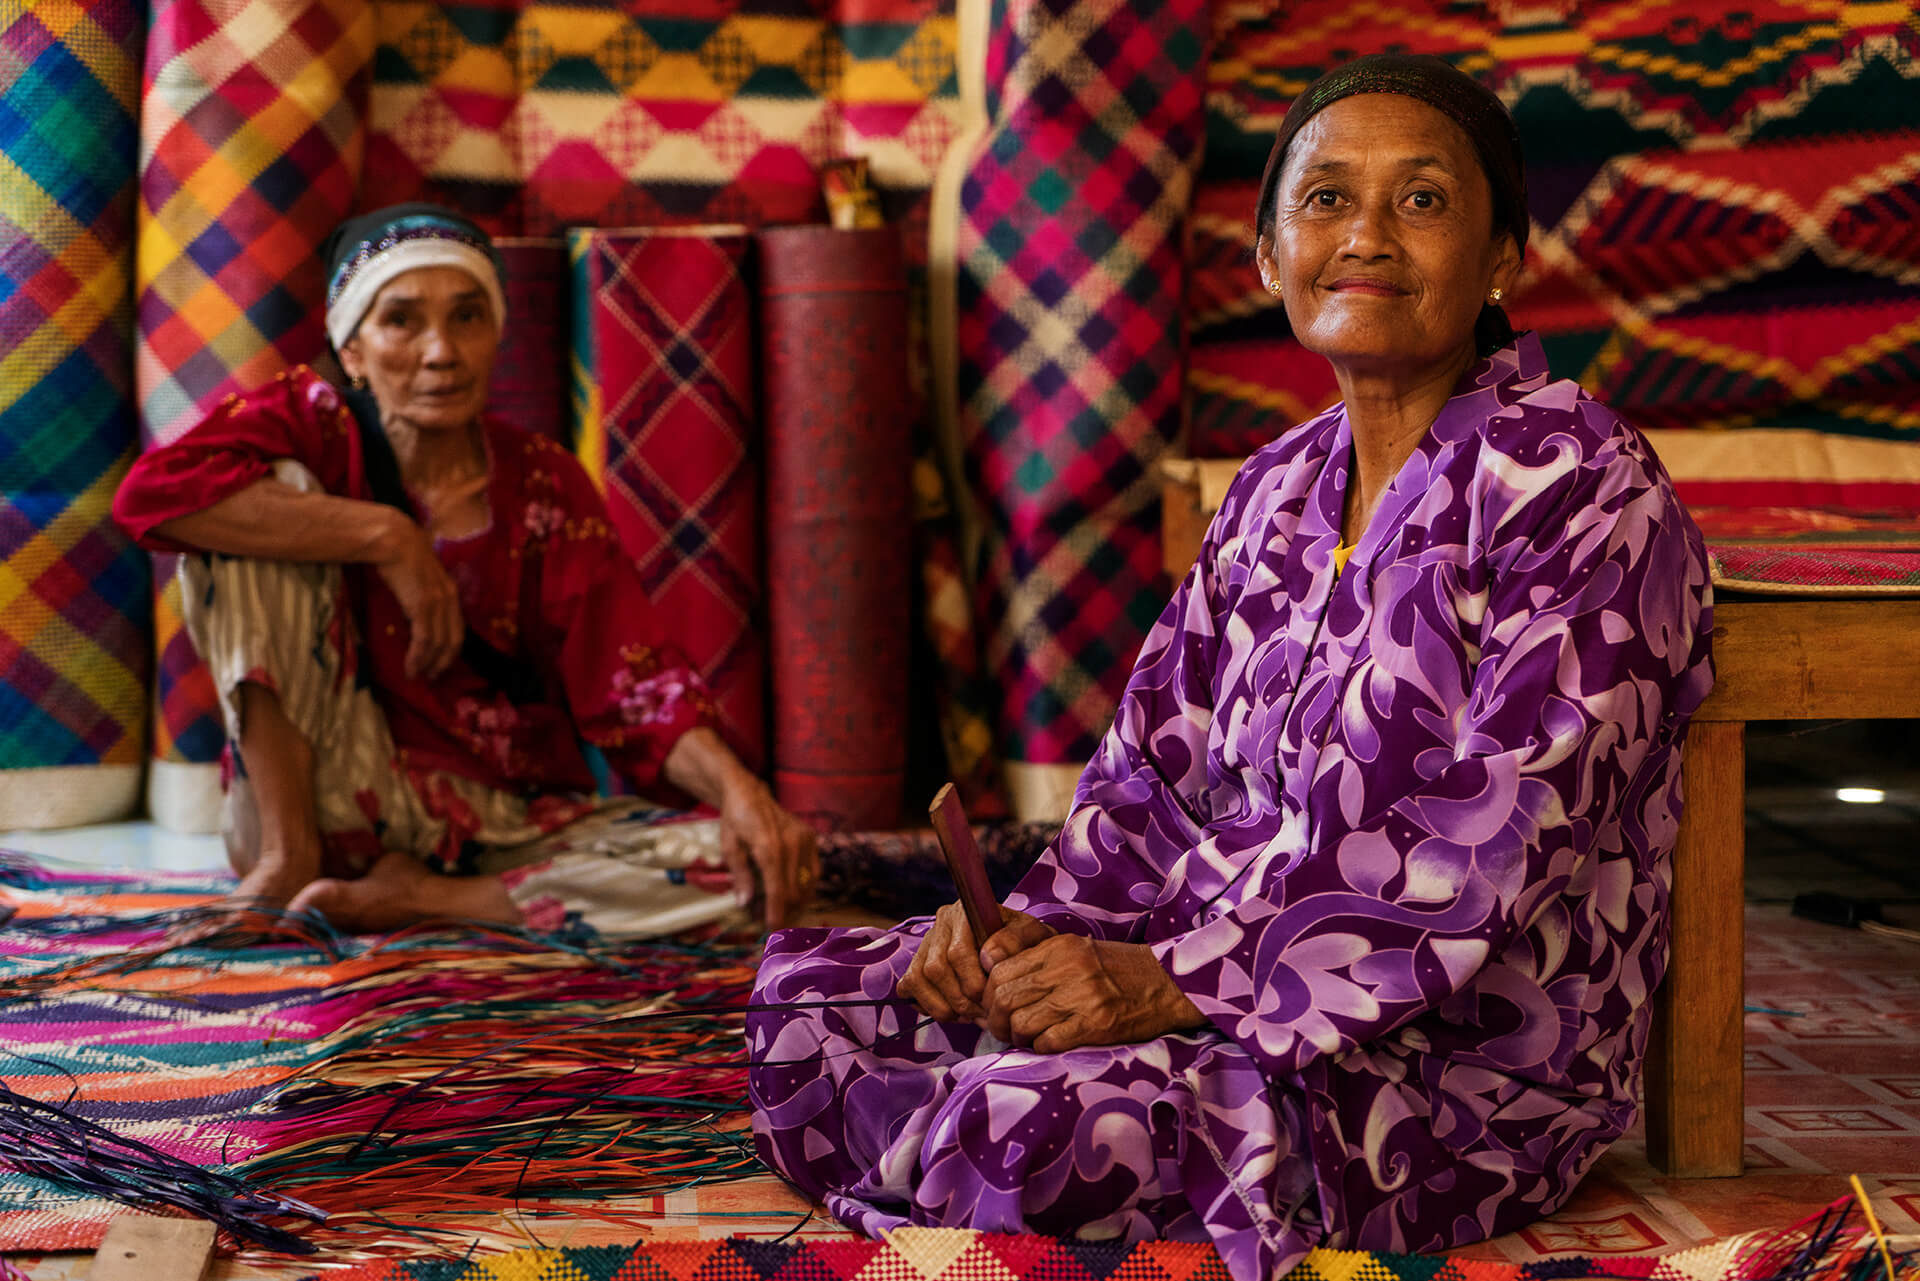 indigenous women in Palawan's weaving communities